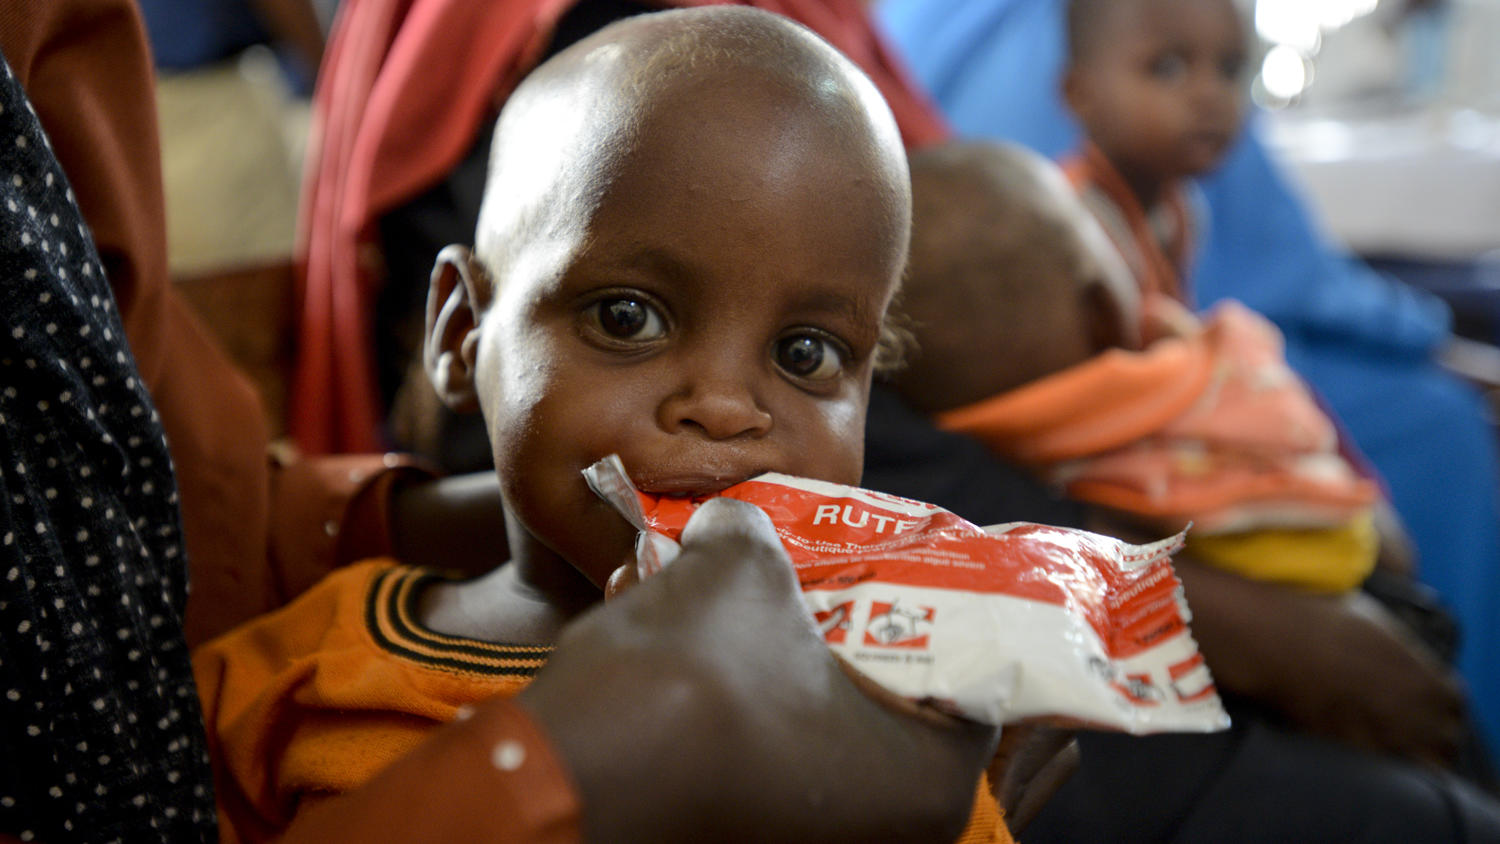 Caught in the menace of hungerSome 308,000 children are malnourished in Somalia, with nearly 56,000 of them severely malnourished. Five years on since the famine, Somali children continue to live in the menace of hunger. Insecurity and poverty, espec